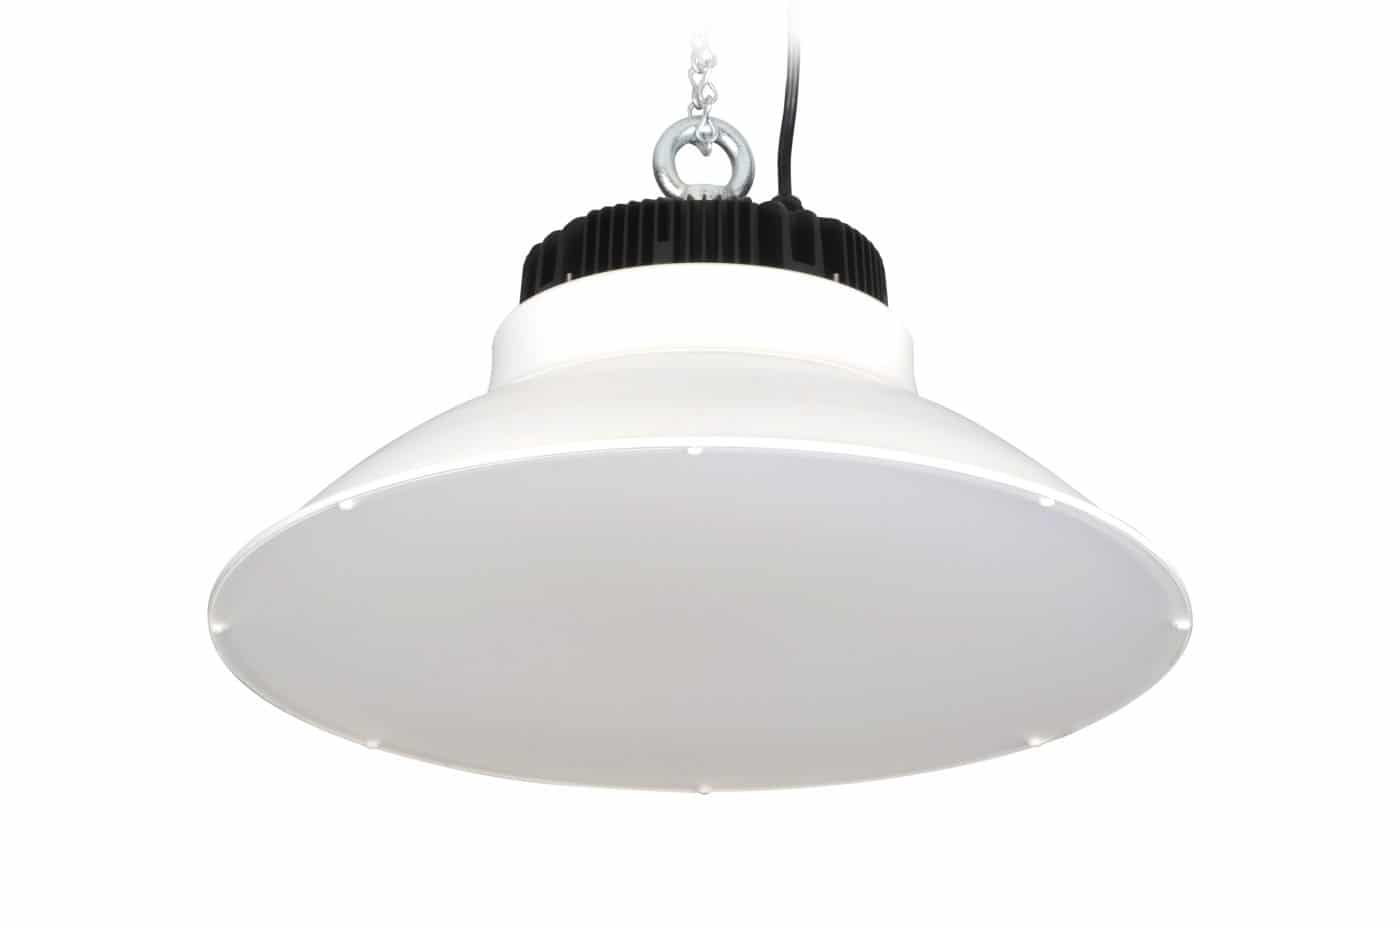 200 Watt Silescent Lighting High Bay LED Lighting Fixture, Reflective